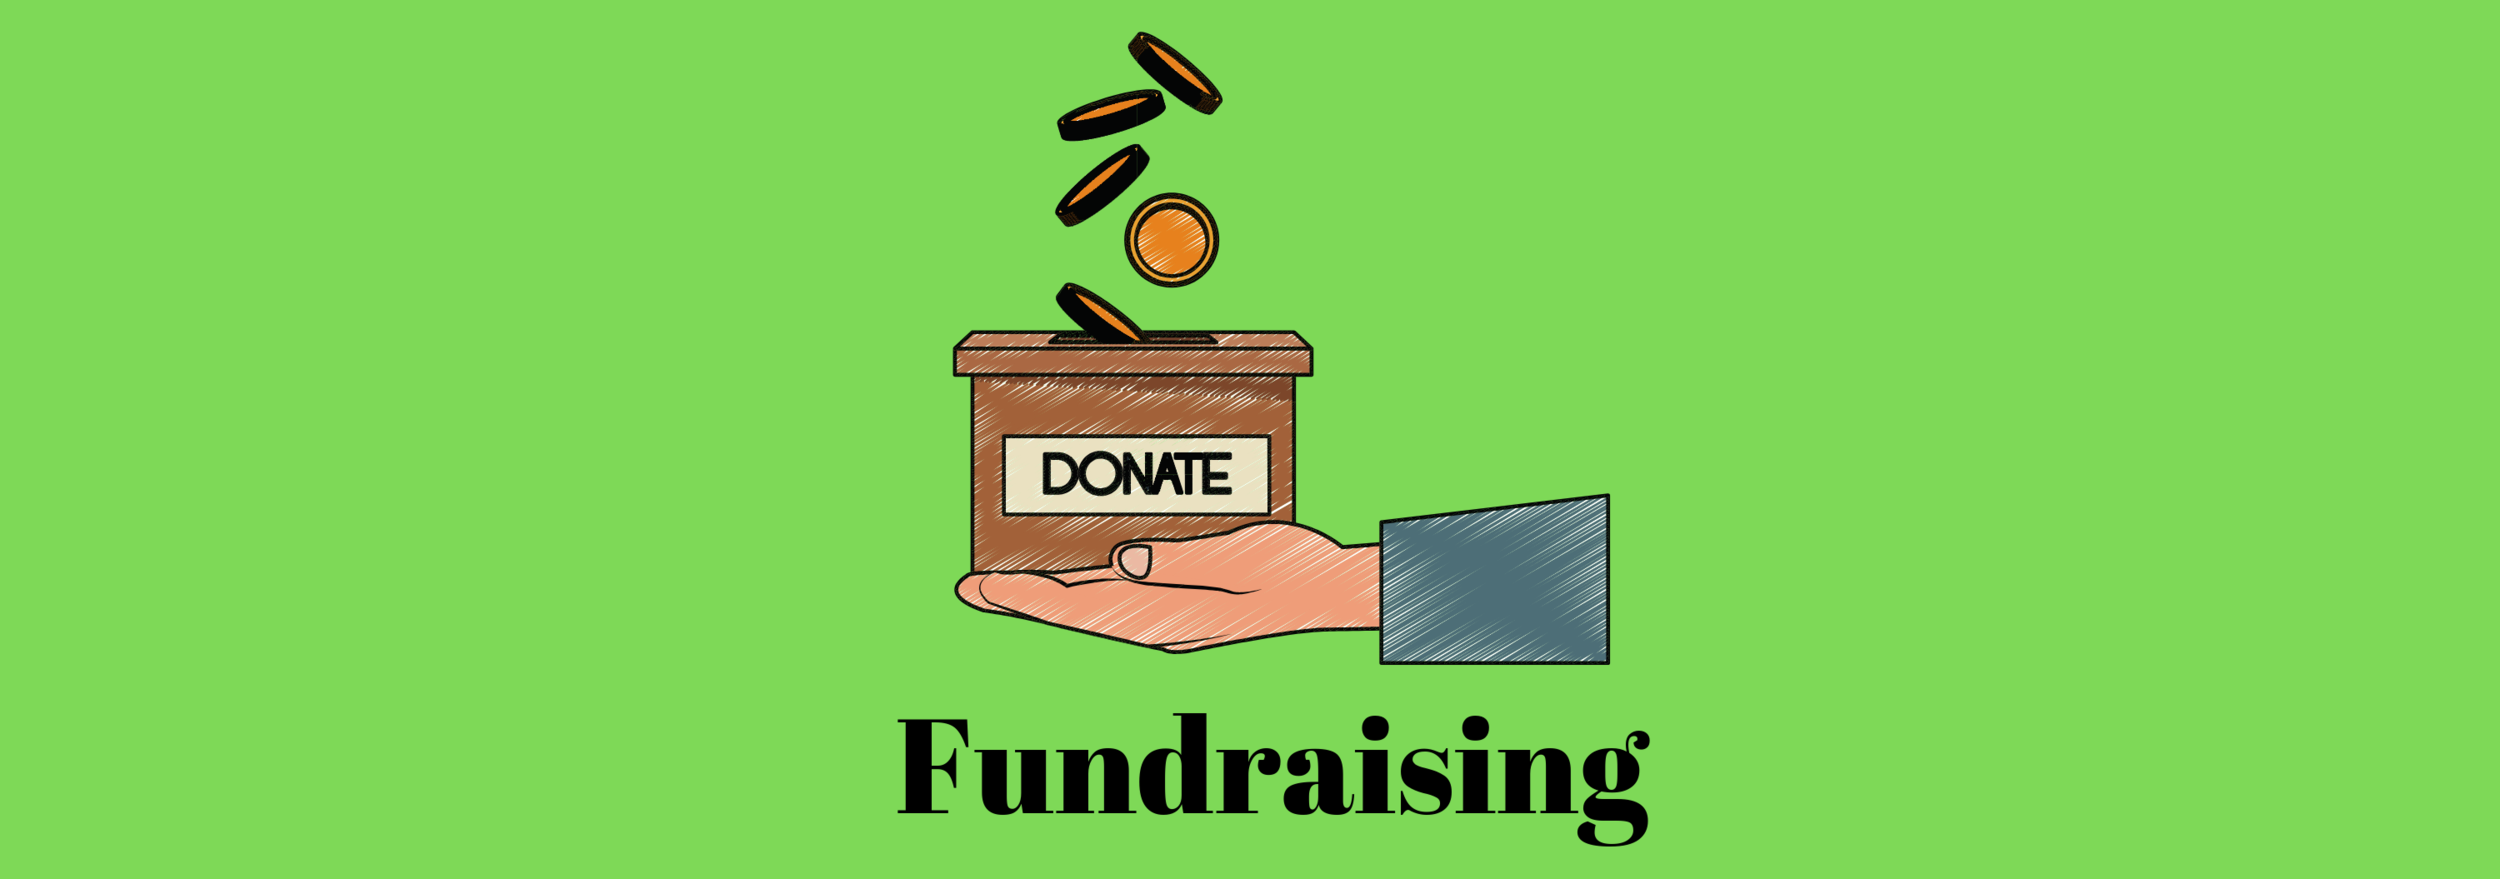 Fundraising (1).png